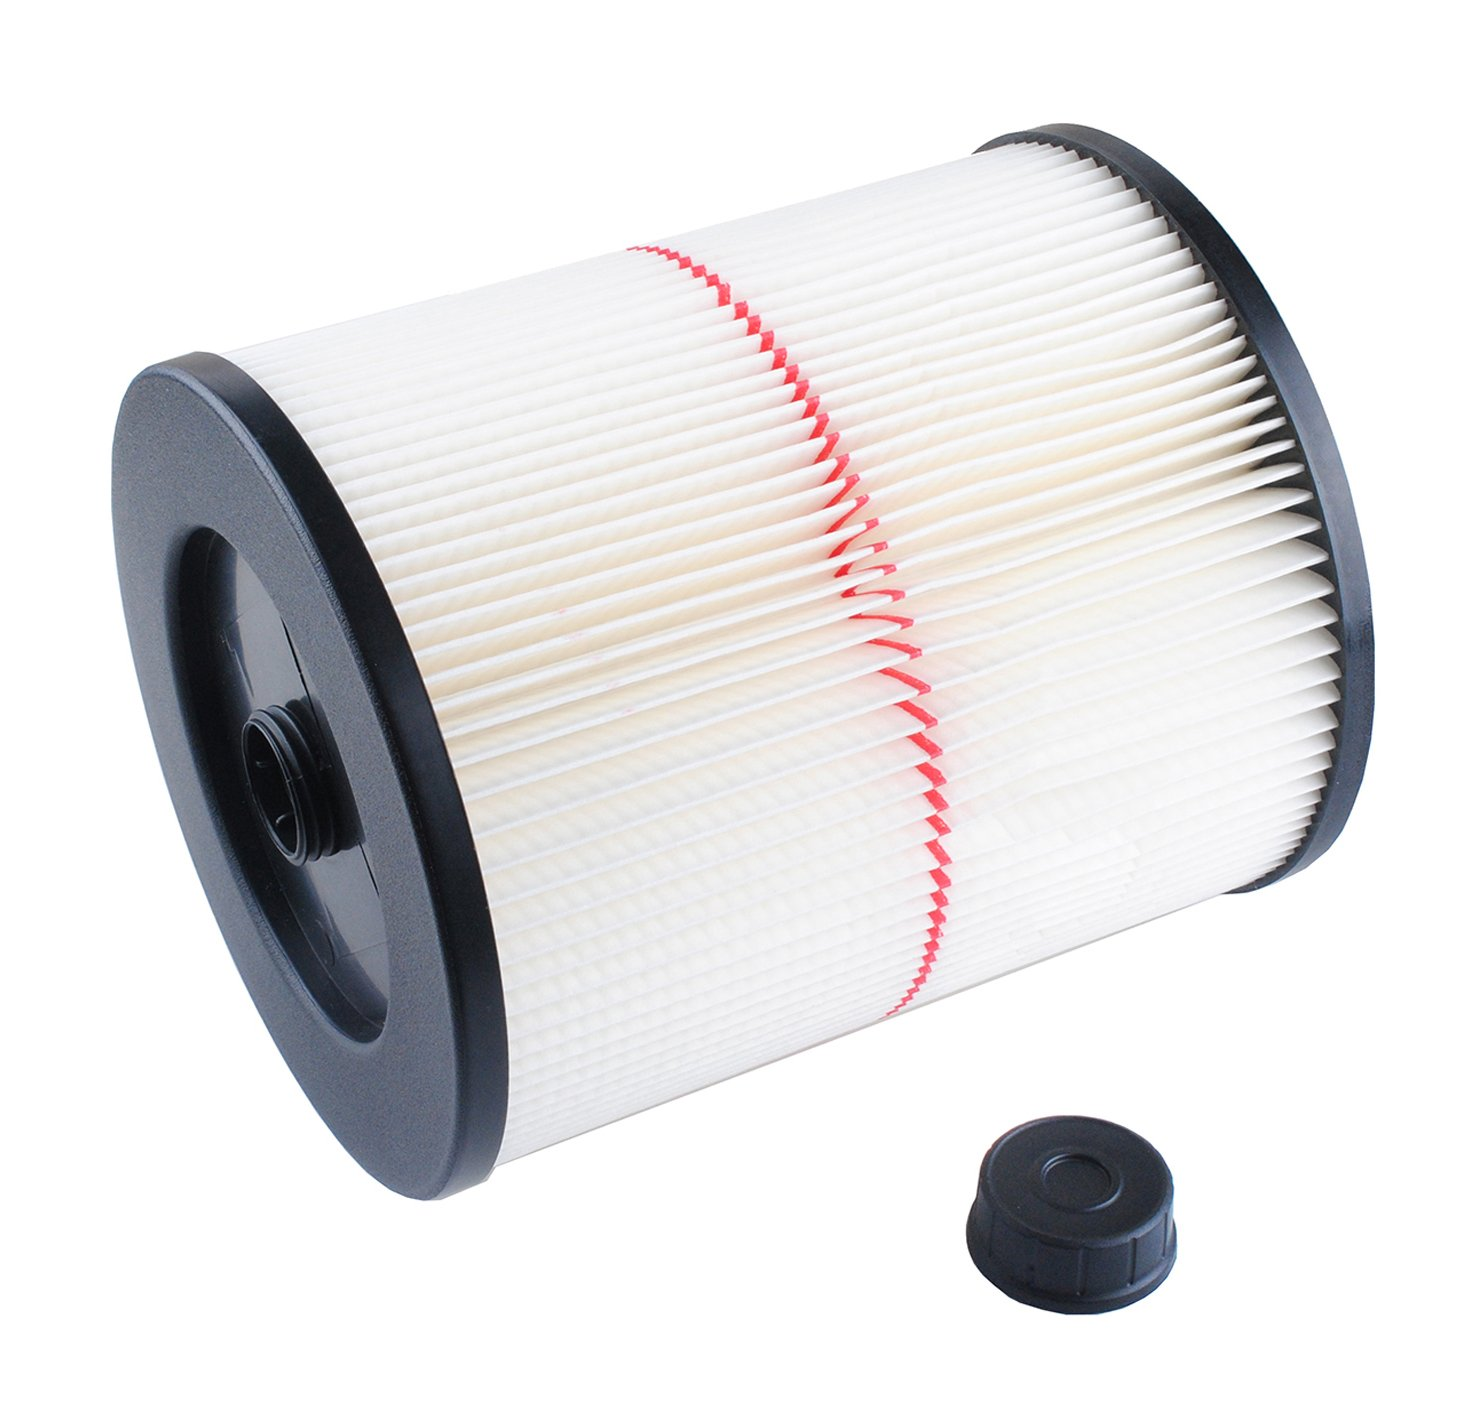 Wadoy 17816 Filter For Craftsman Shop Vac/9-17816 Wet Dry Vac Filter For Shop Vacuum Cleaners,8.5 inches